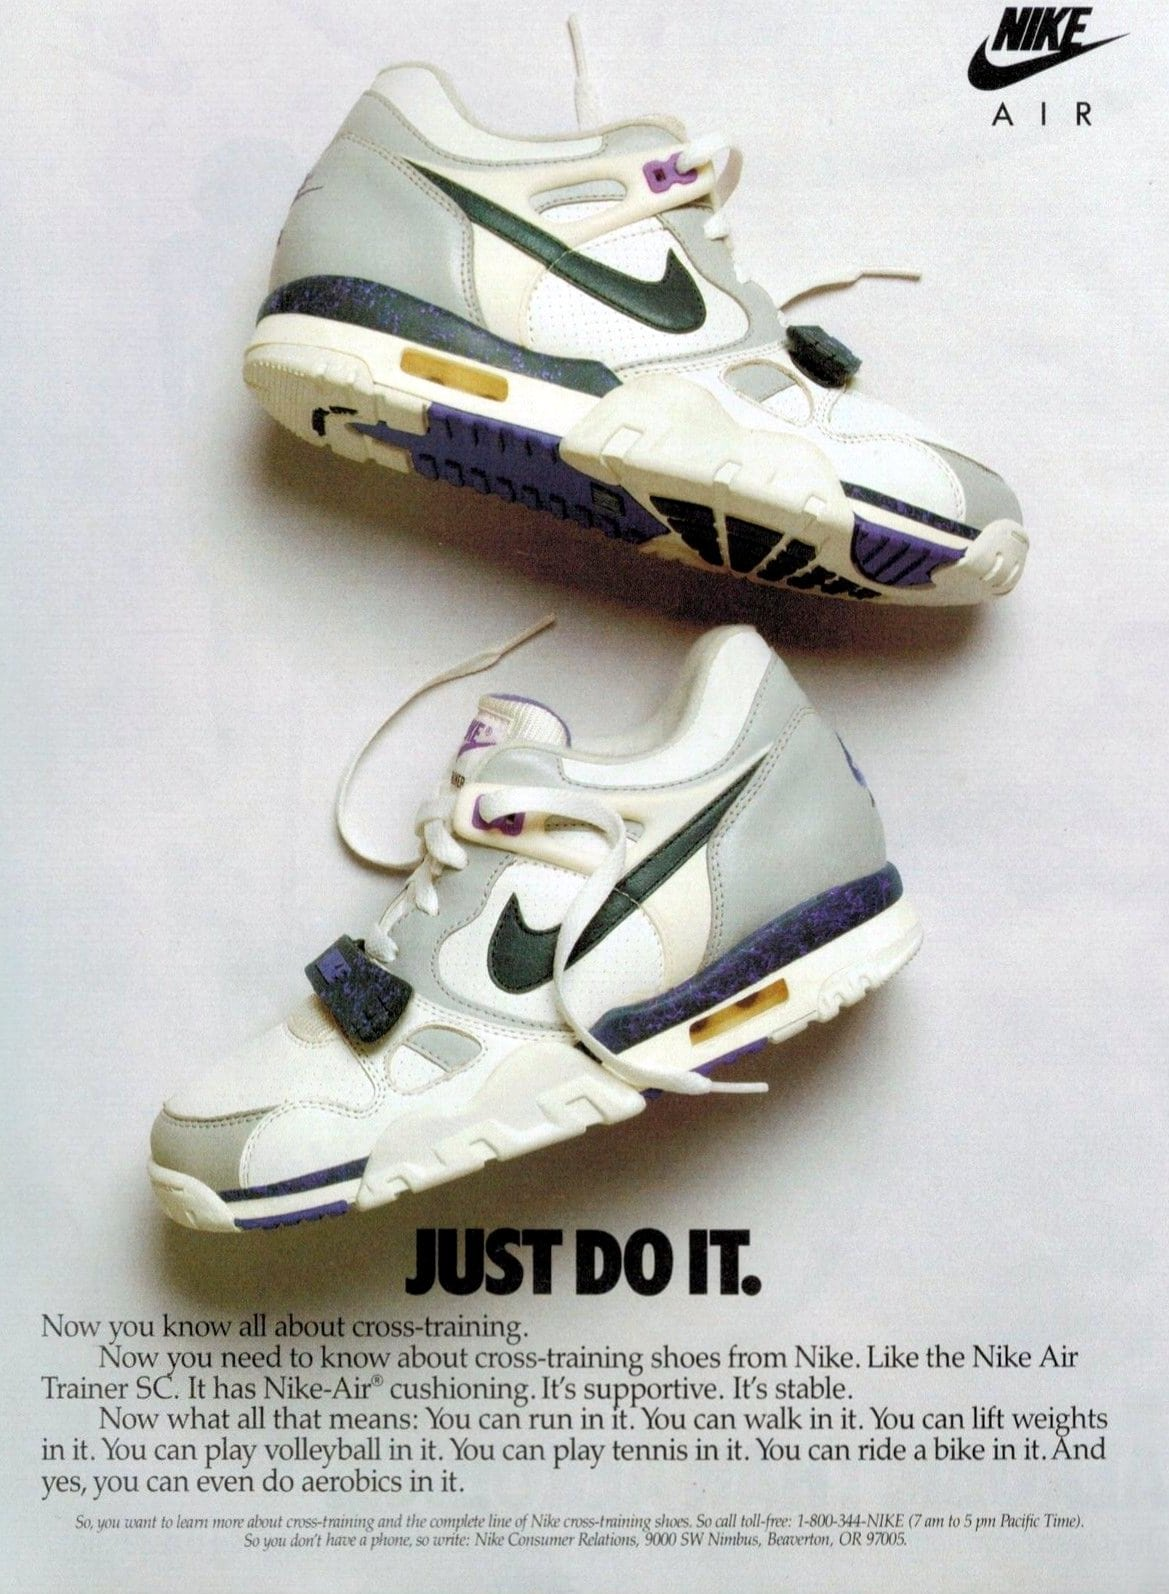 Just Do It - Vintage Nike Air Trainer SC shoes (1988)